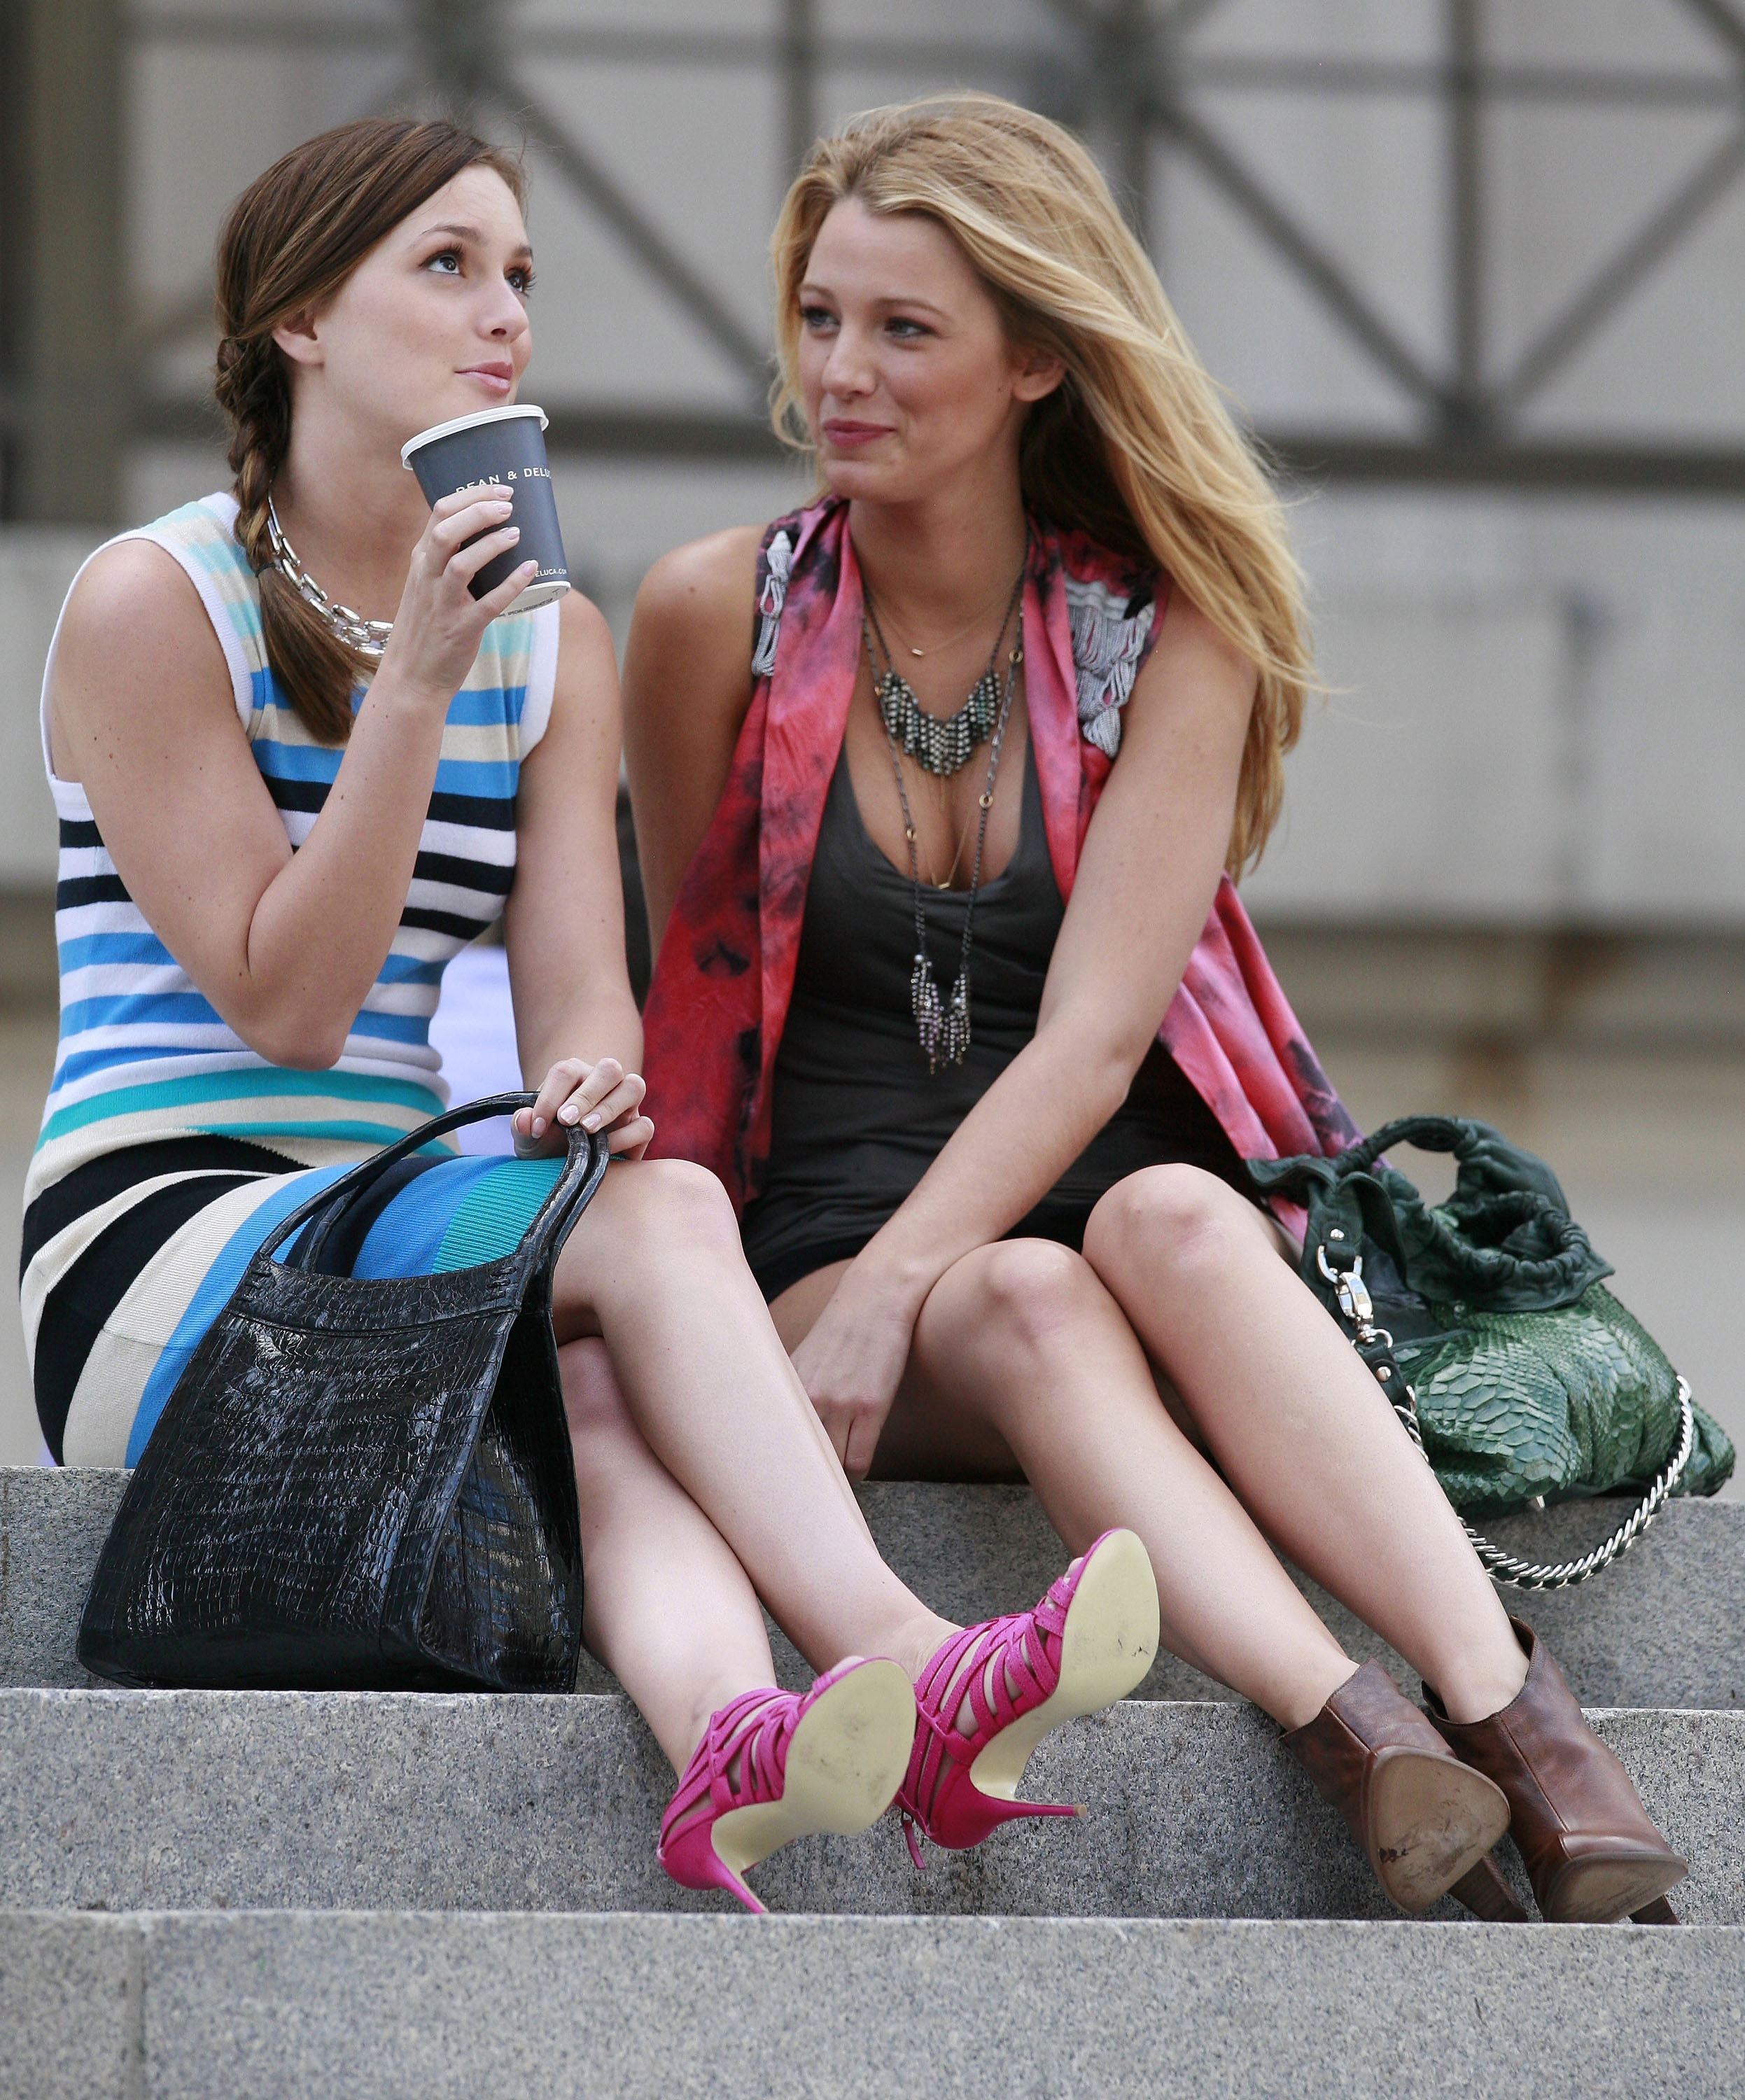 Leighton Meester and Blake Lively, also known as B and S, chatted during a scene in July 2009.